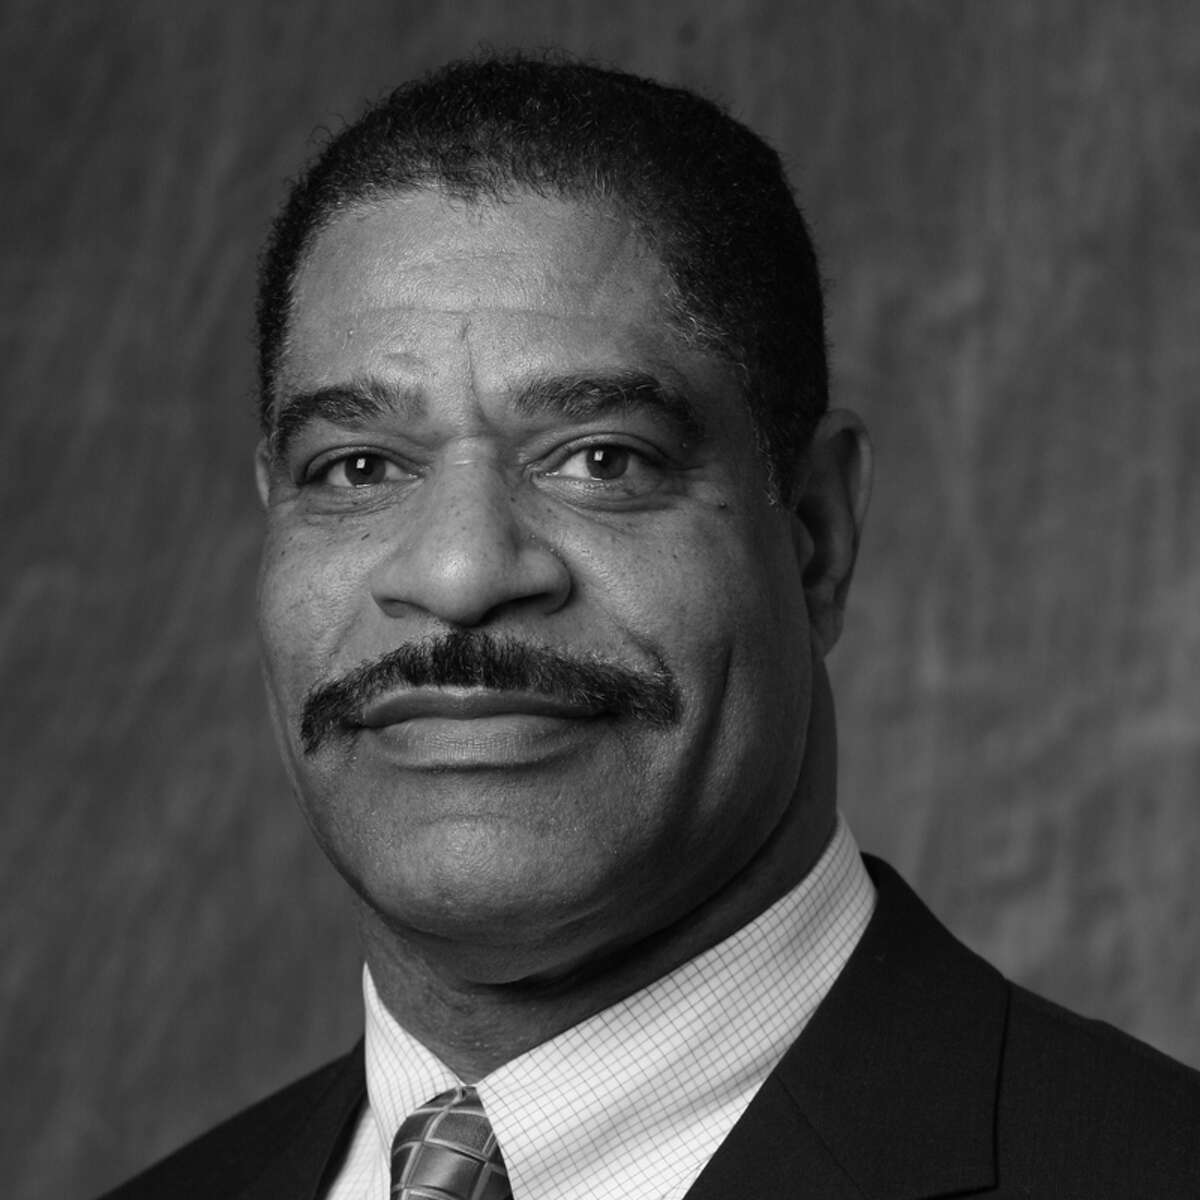 Curtis Powell of Rensselaer Polytechnic Institute in Troy has been named to the board of TrustCo Bank Corp NY, the parent company of Trustco Bank.